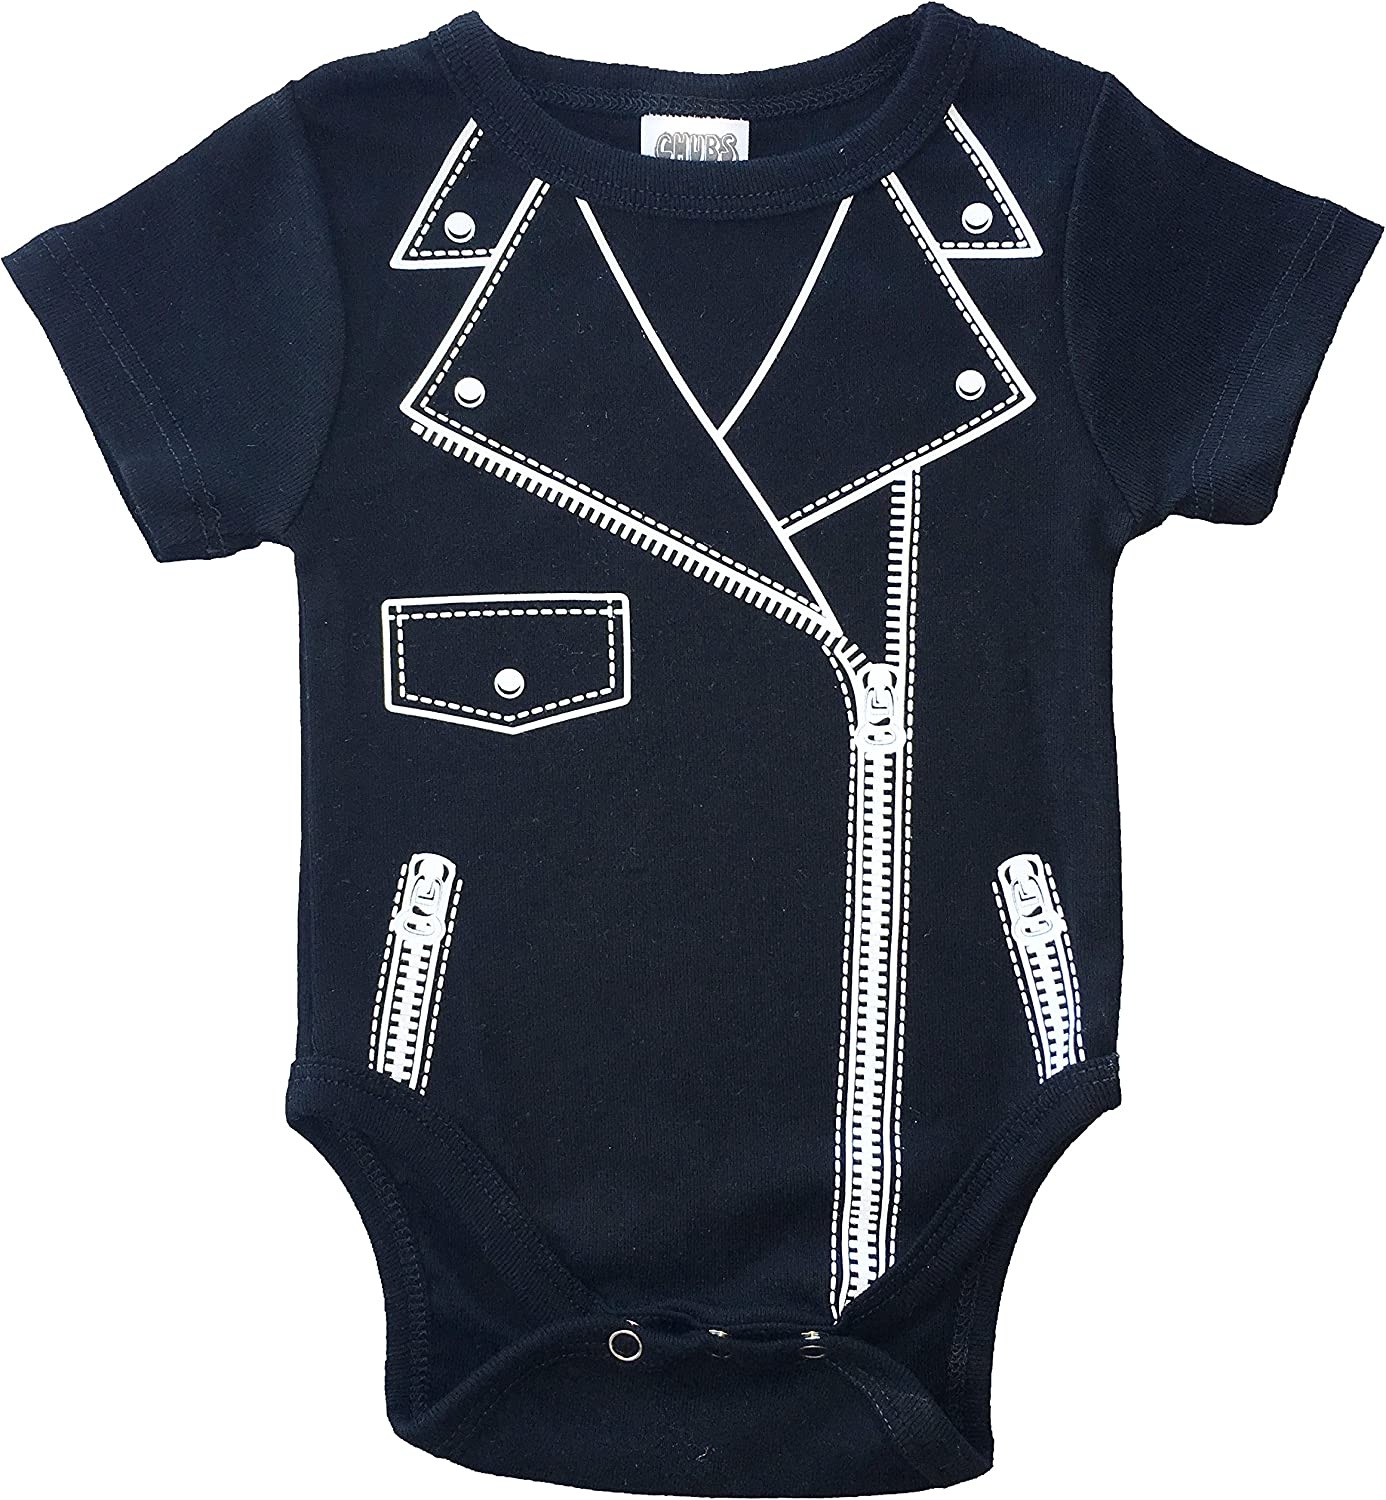 Infant Boy 0 3 6 Month Outfit Motorcycle Biker Black One Piece